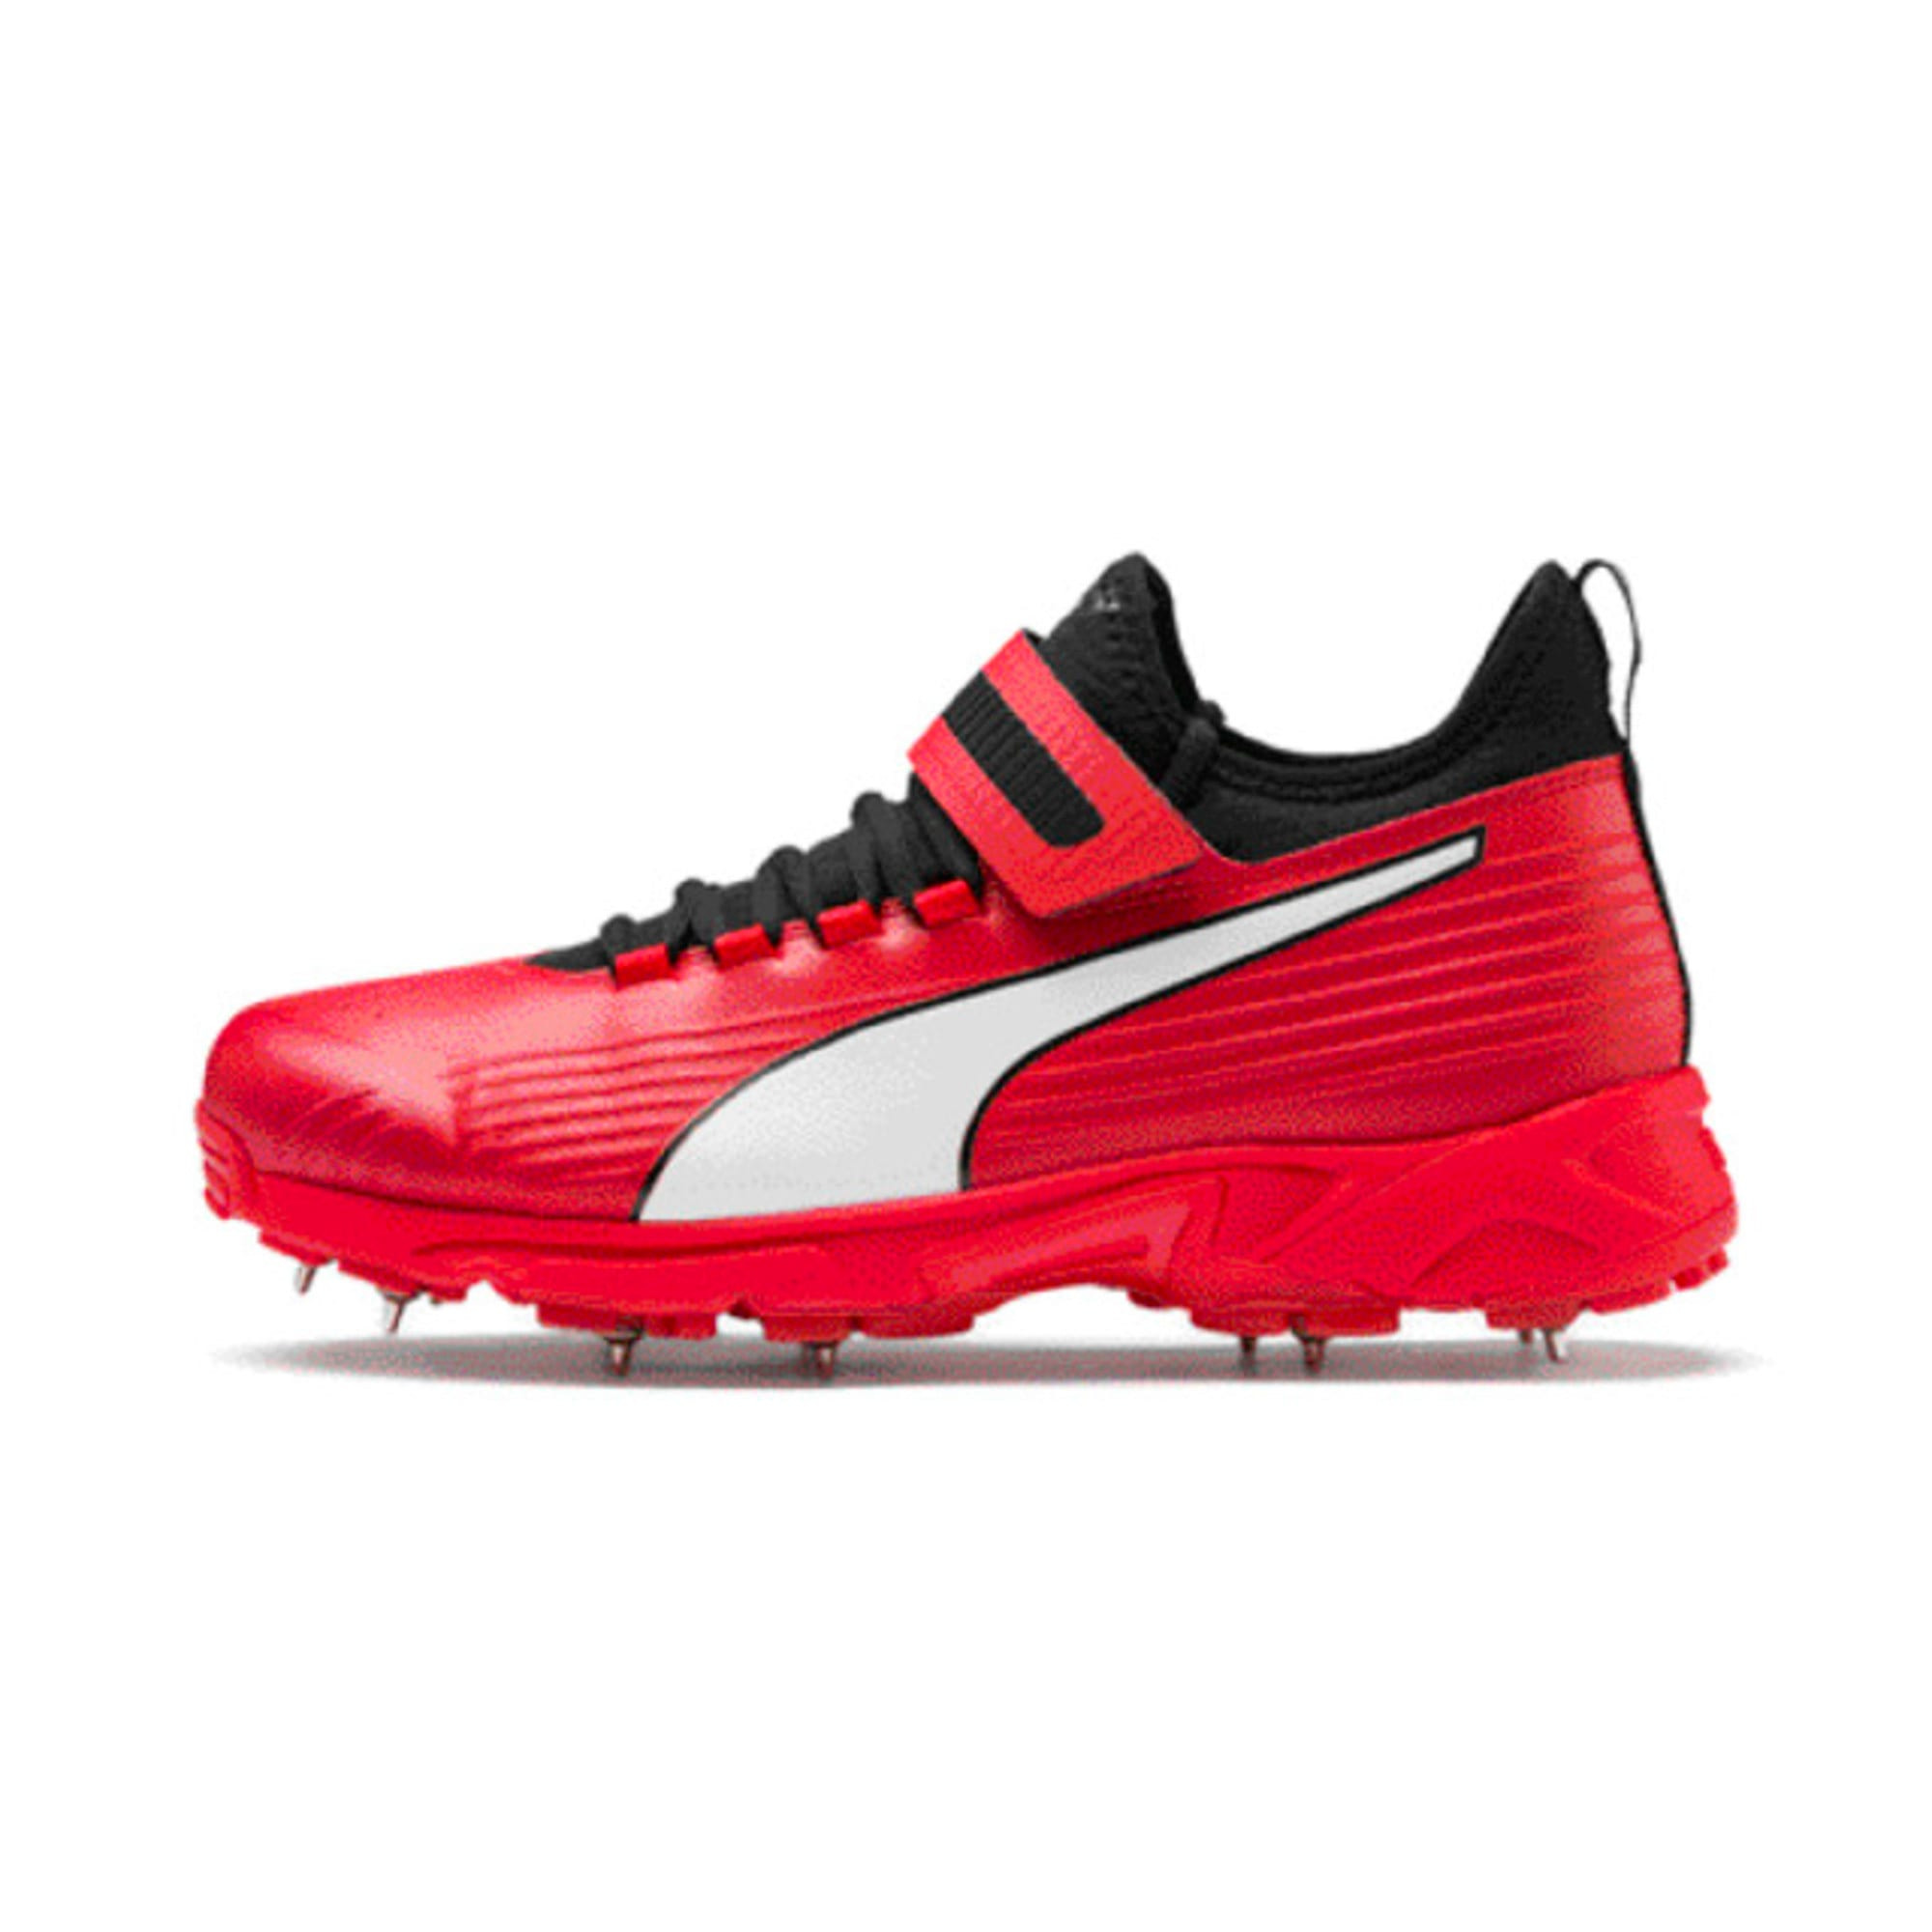 Thumbnail 1 of PUMA 19.1 Bowling Men's Cricket Shoes, High Risk Red-Black-White, medium-IND